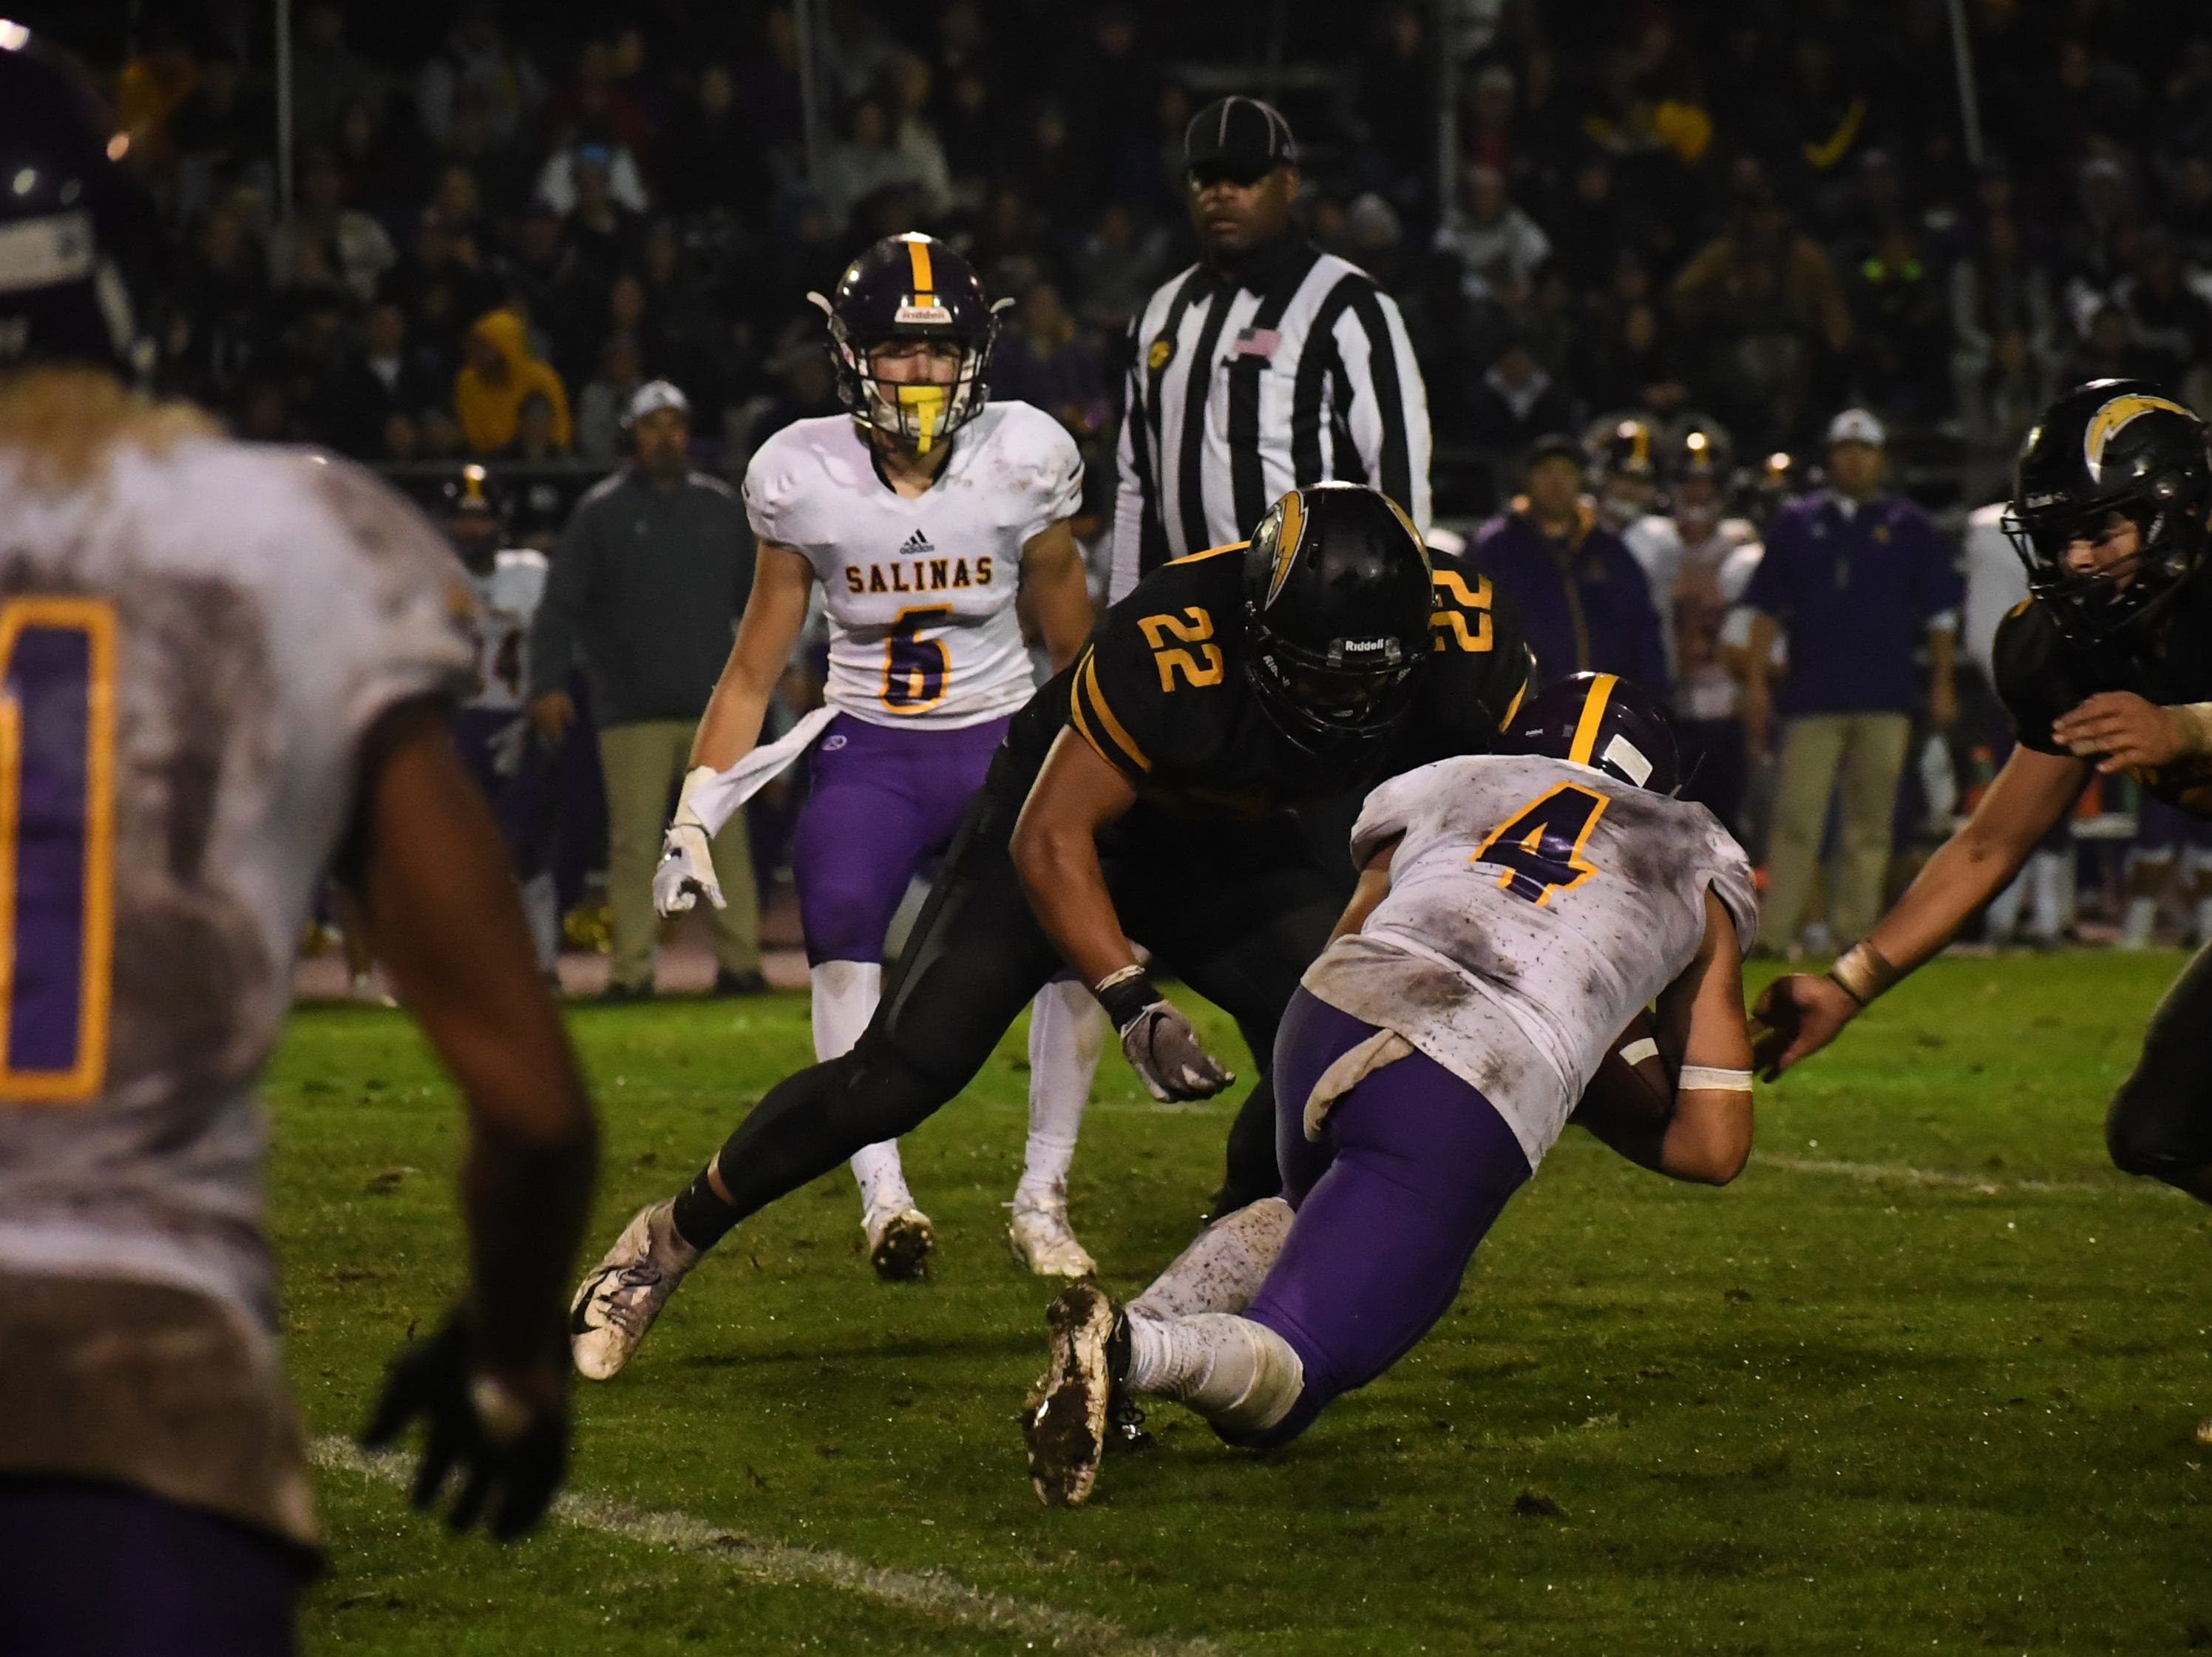 Wide receiver Ivan Curiel (4) dives forward for a first down.